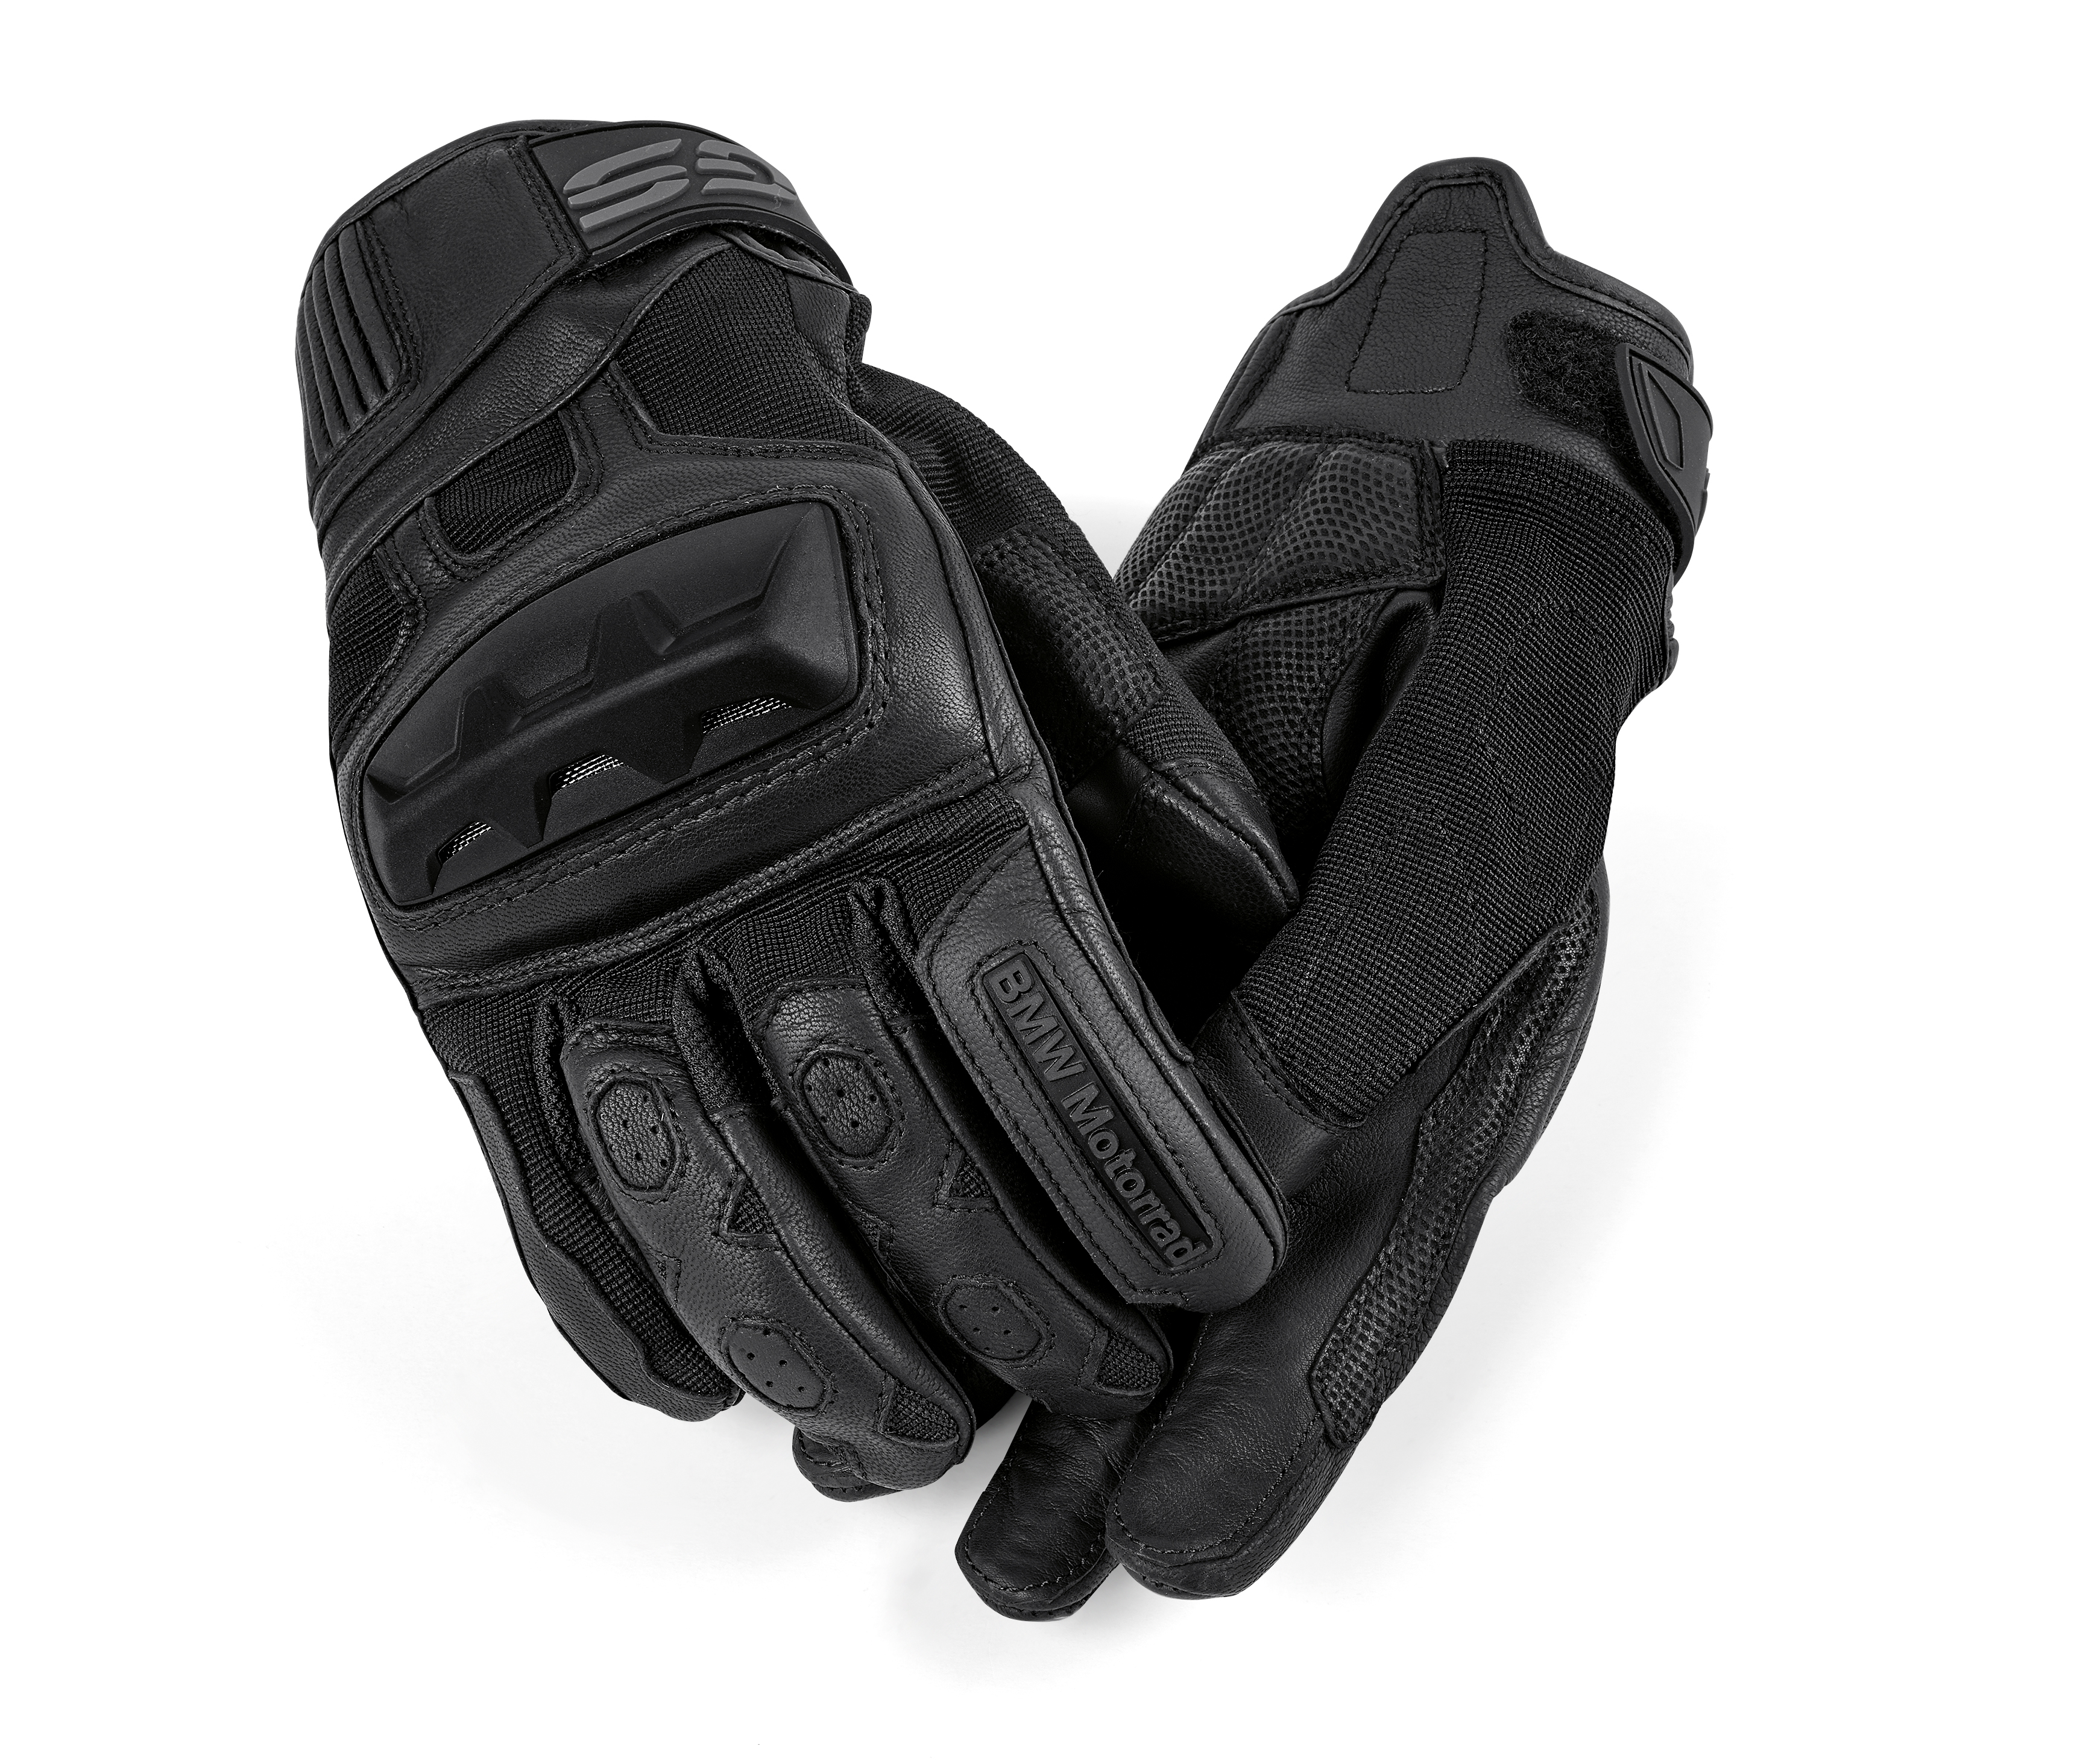 Мотоперчатки BMW Motorrad Rallye Gloves, Black new